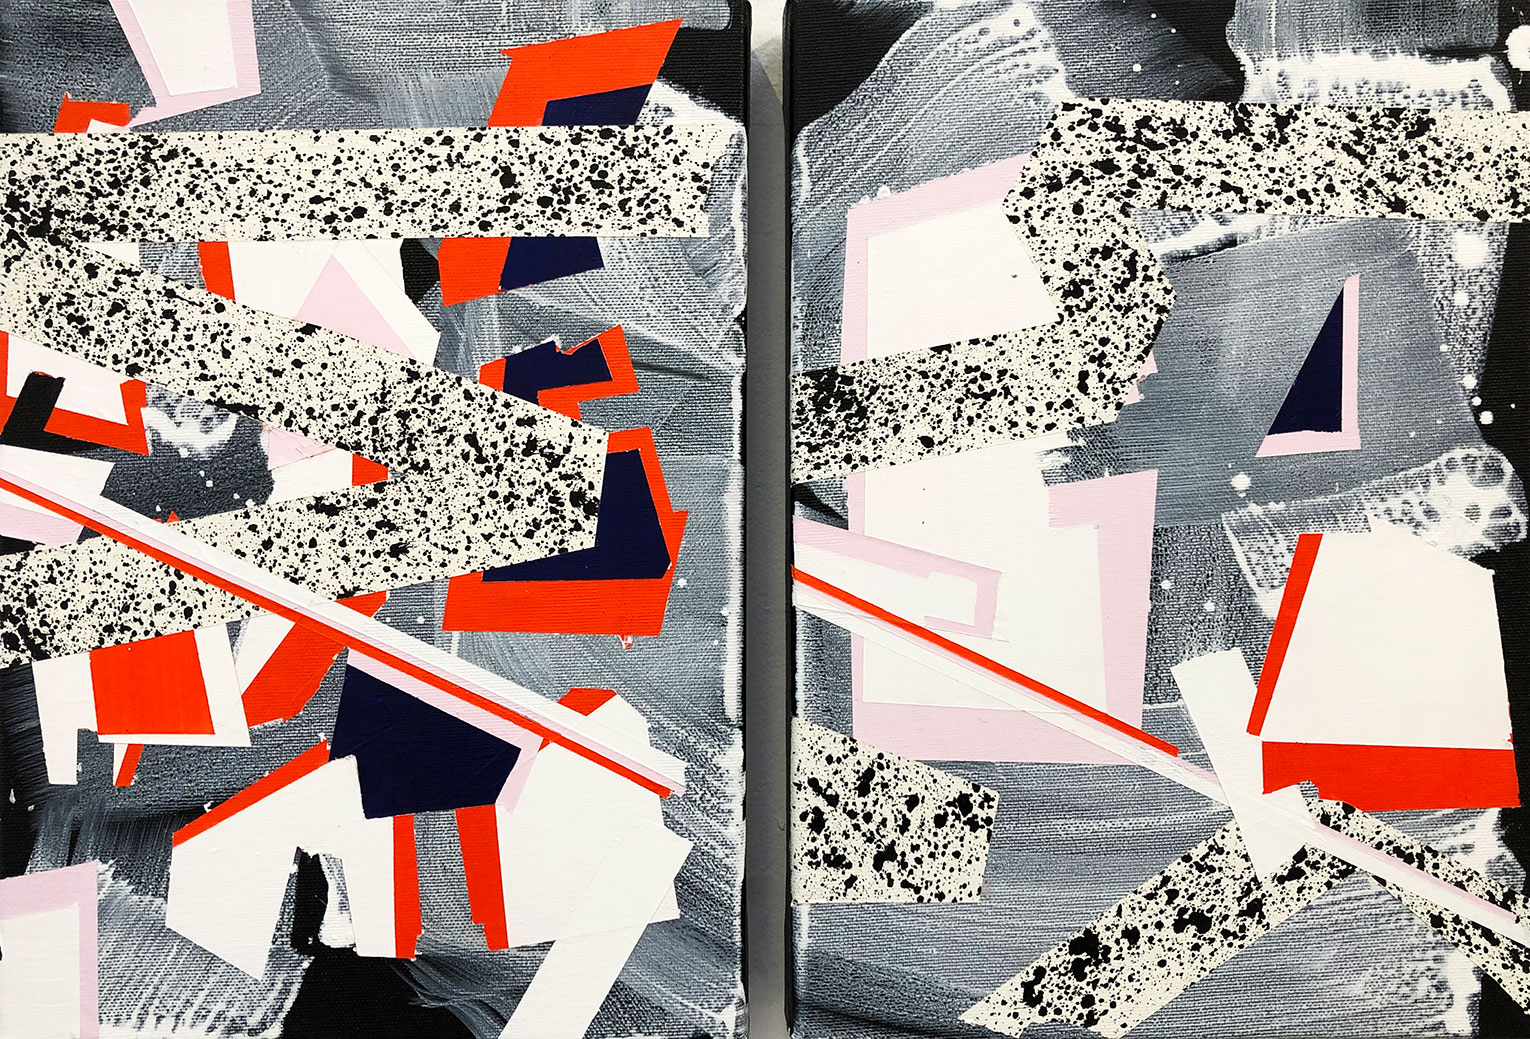 <b>Title: </b>Will Sprawl <br /><b>Year: </b>2019<br /><b>Medium: </b>Acrylic and spray paint on canvas<br /><b>Size: </b>50 x 35 x 4 cm (Diptych)